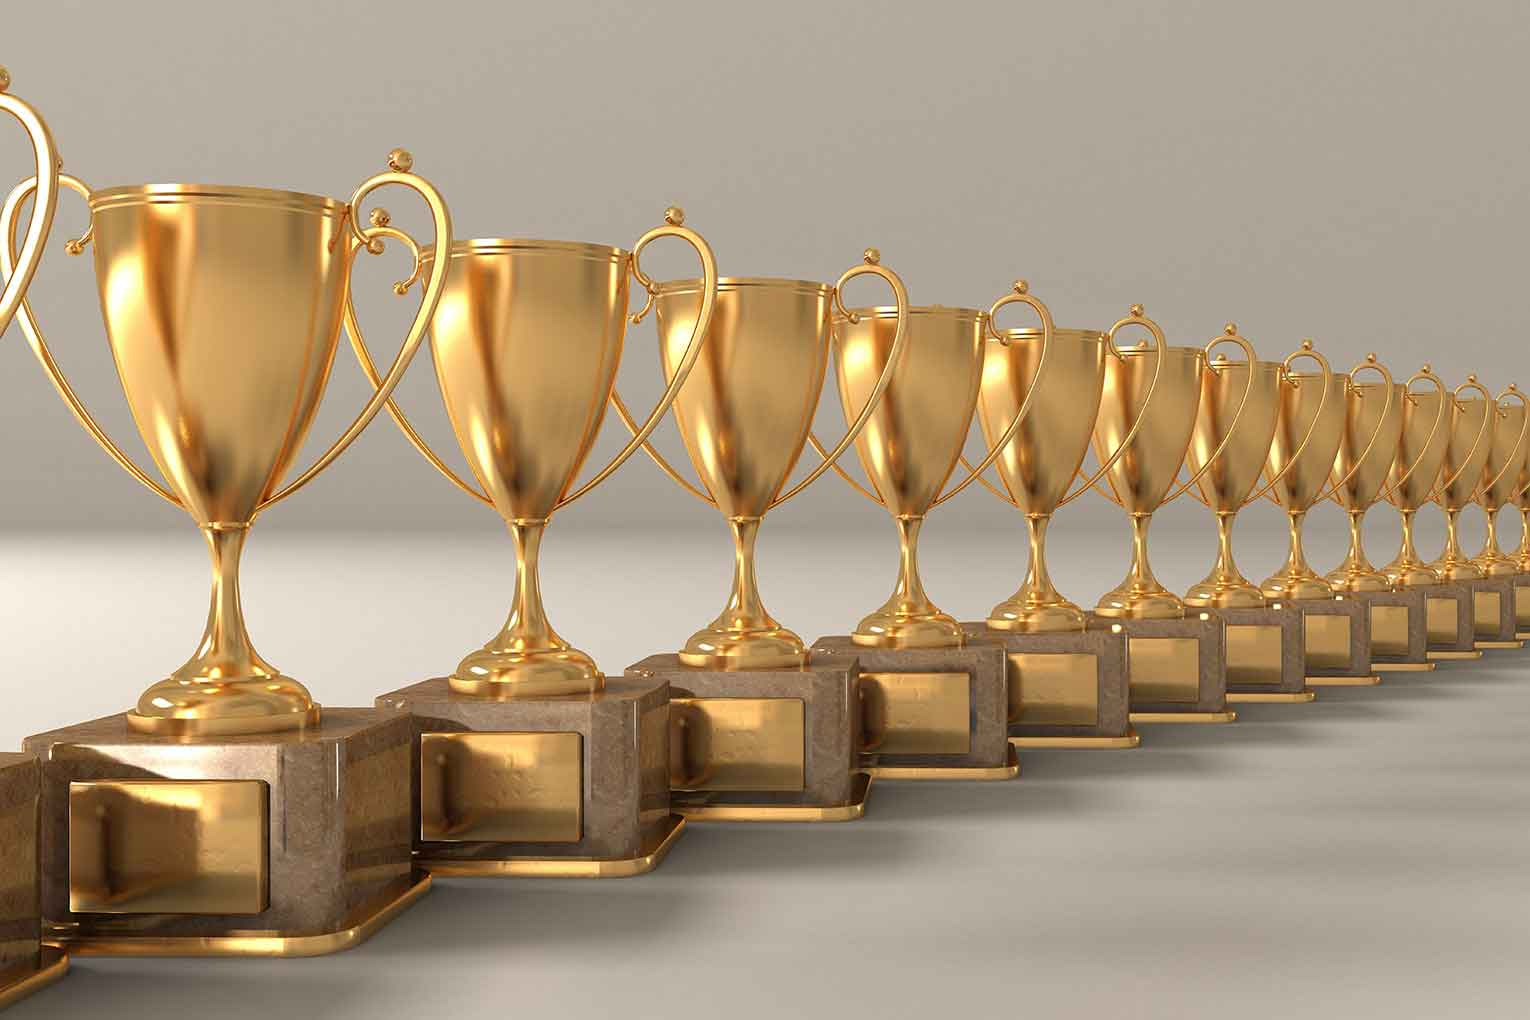 L&G unveils winners of Business Quality Awards